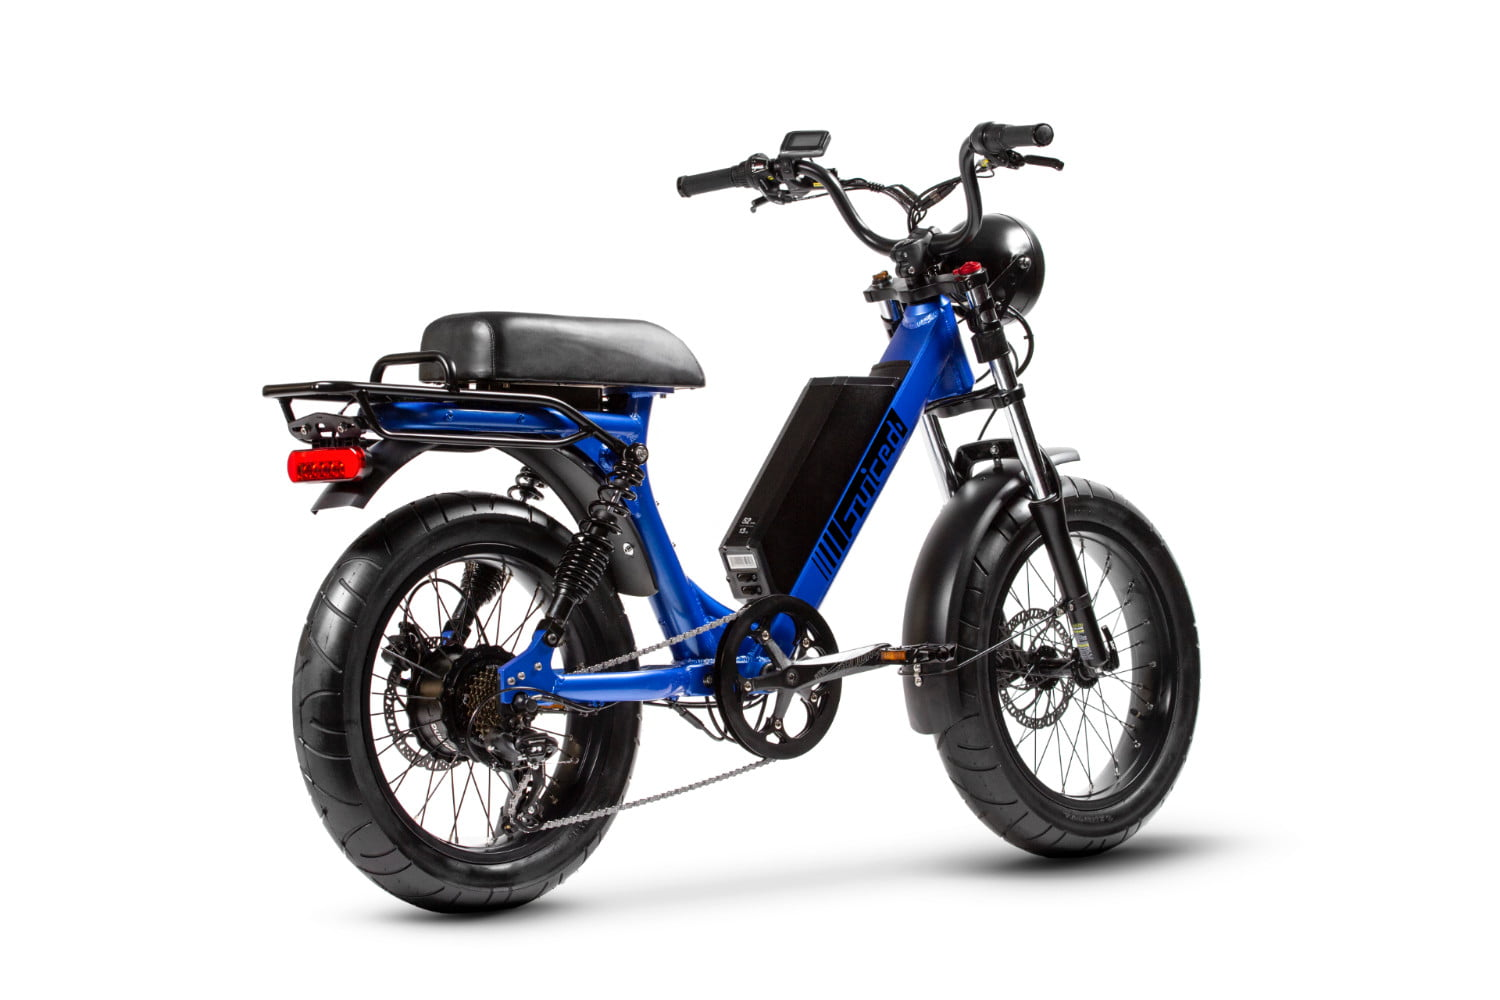 juiced bikes scorpion moped style e bike packs performance safety and comfort blue backangle